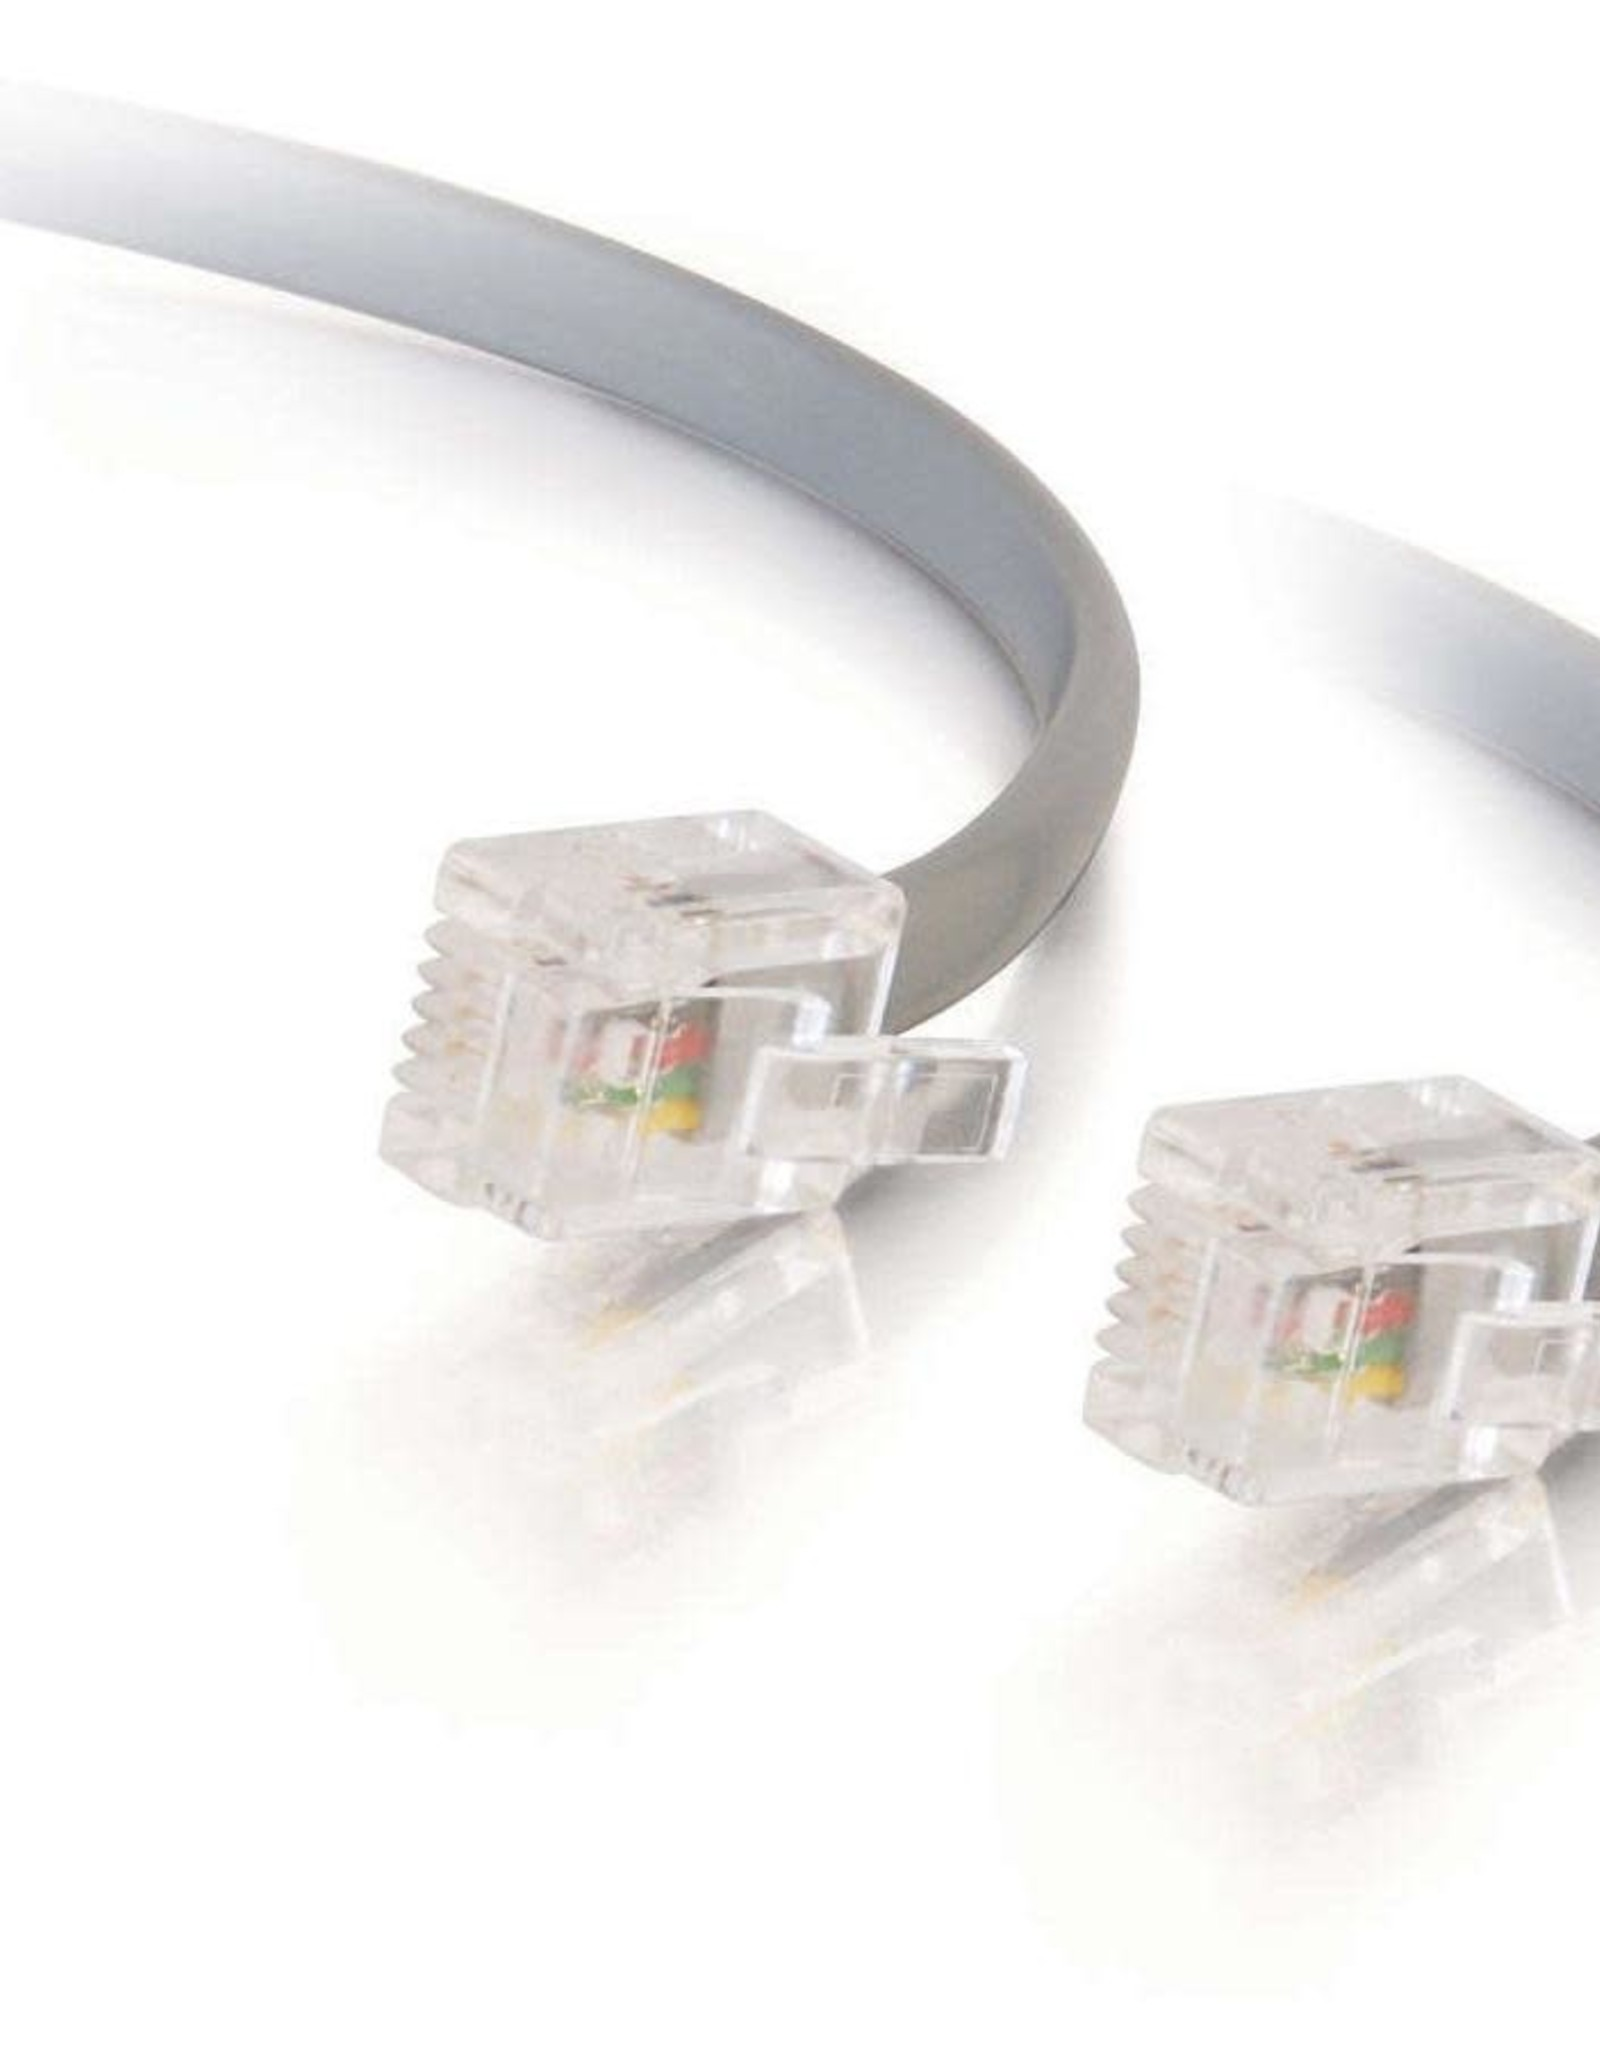 C2G (Cables To Go) C2G RJ12 25FT MODULAR TELEPHONE CABLE 08133